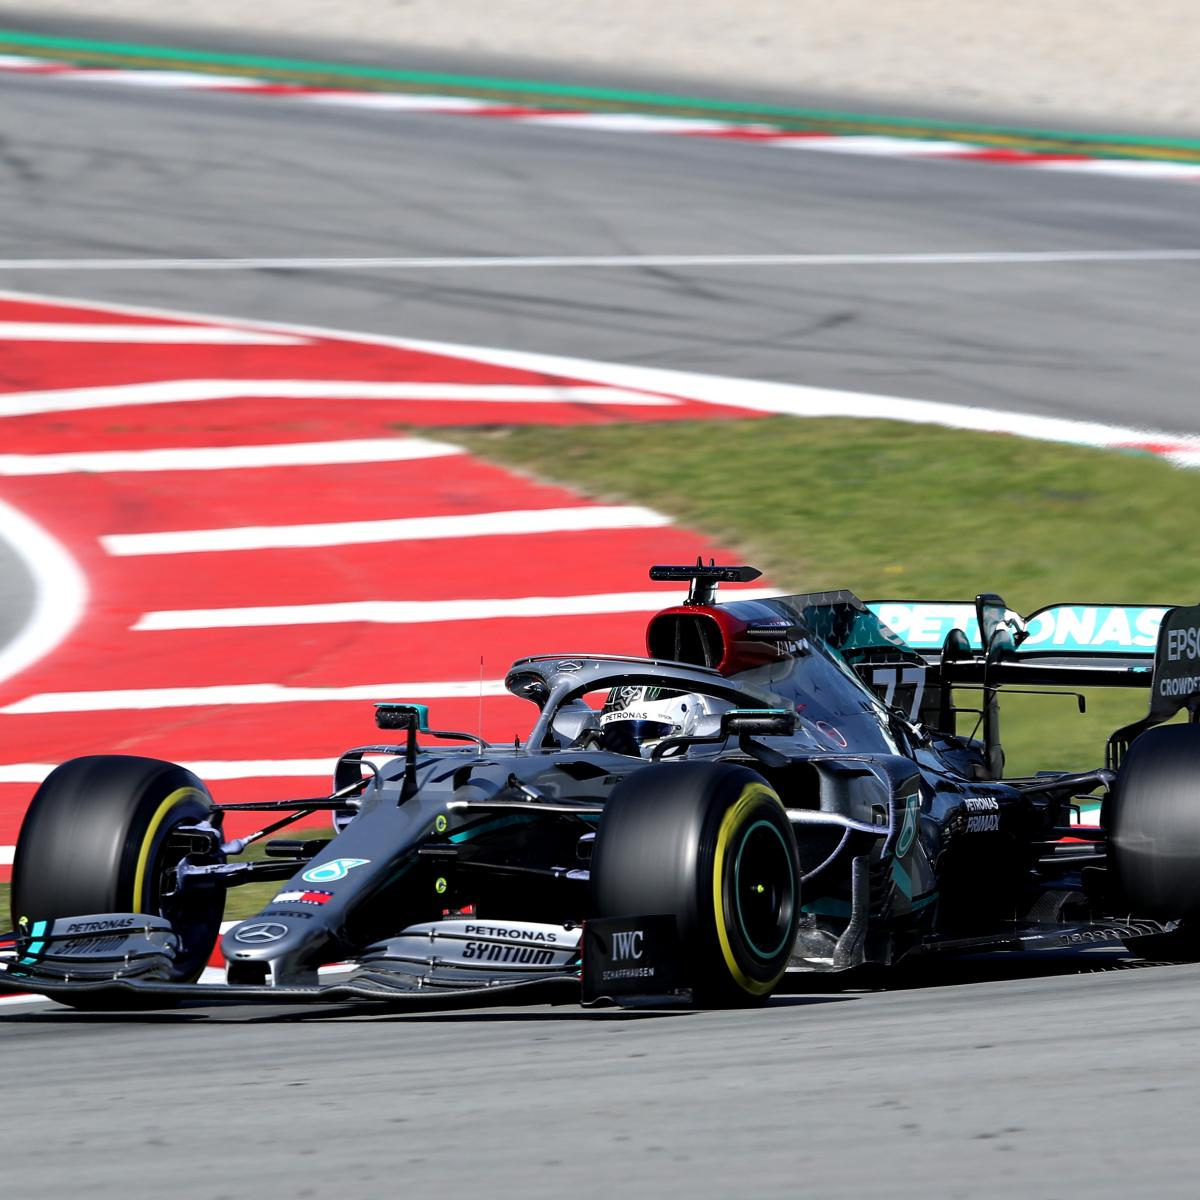 F1 Pre-Season Testing 2020: Friday Times and Analysis from Barcelona